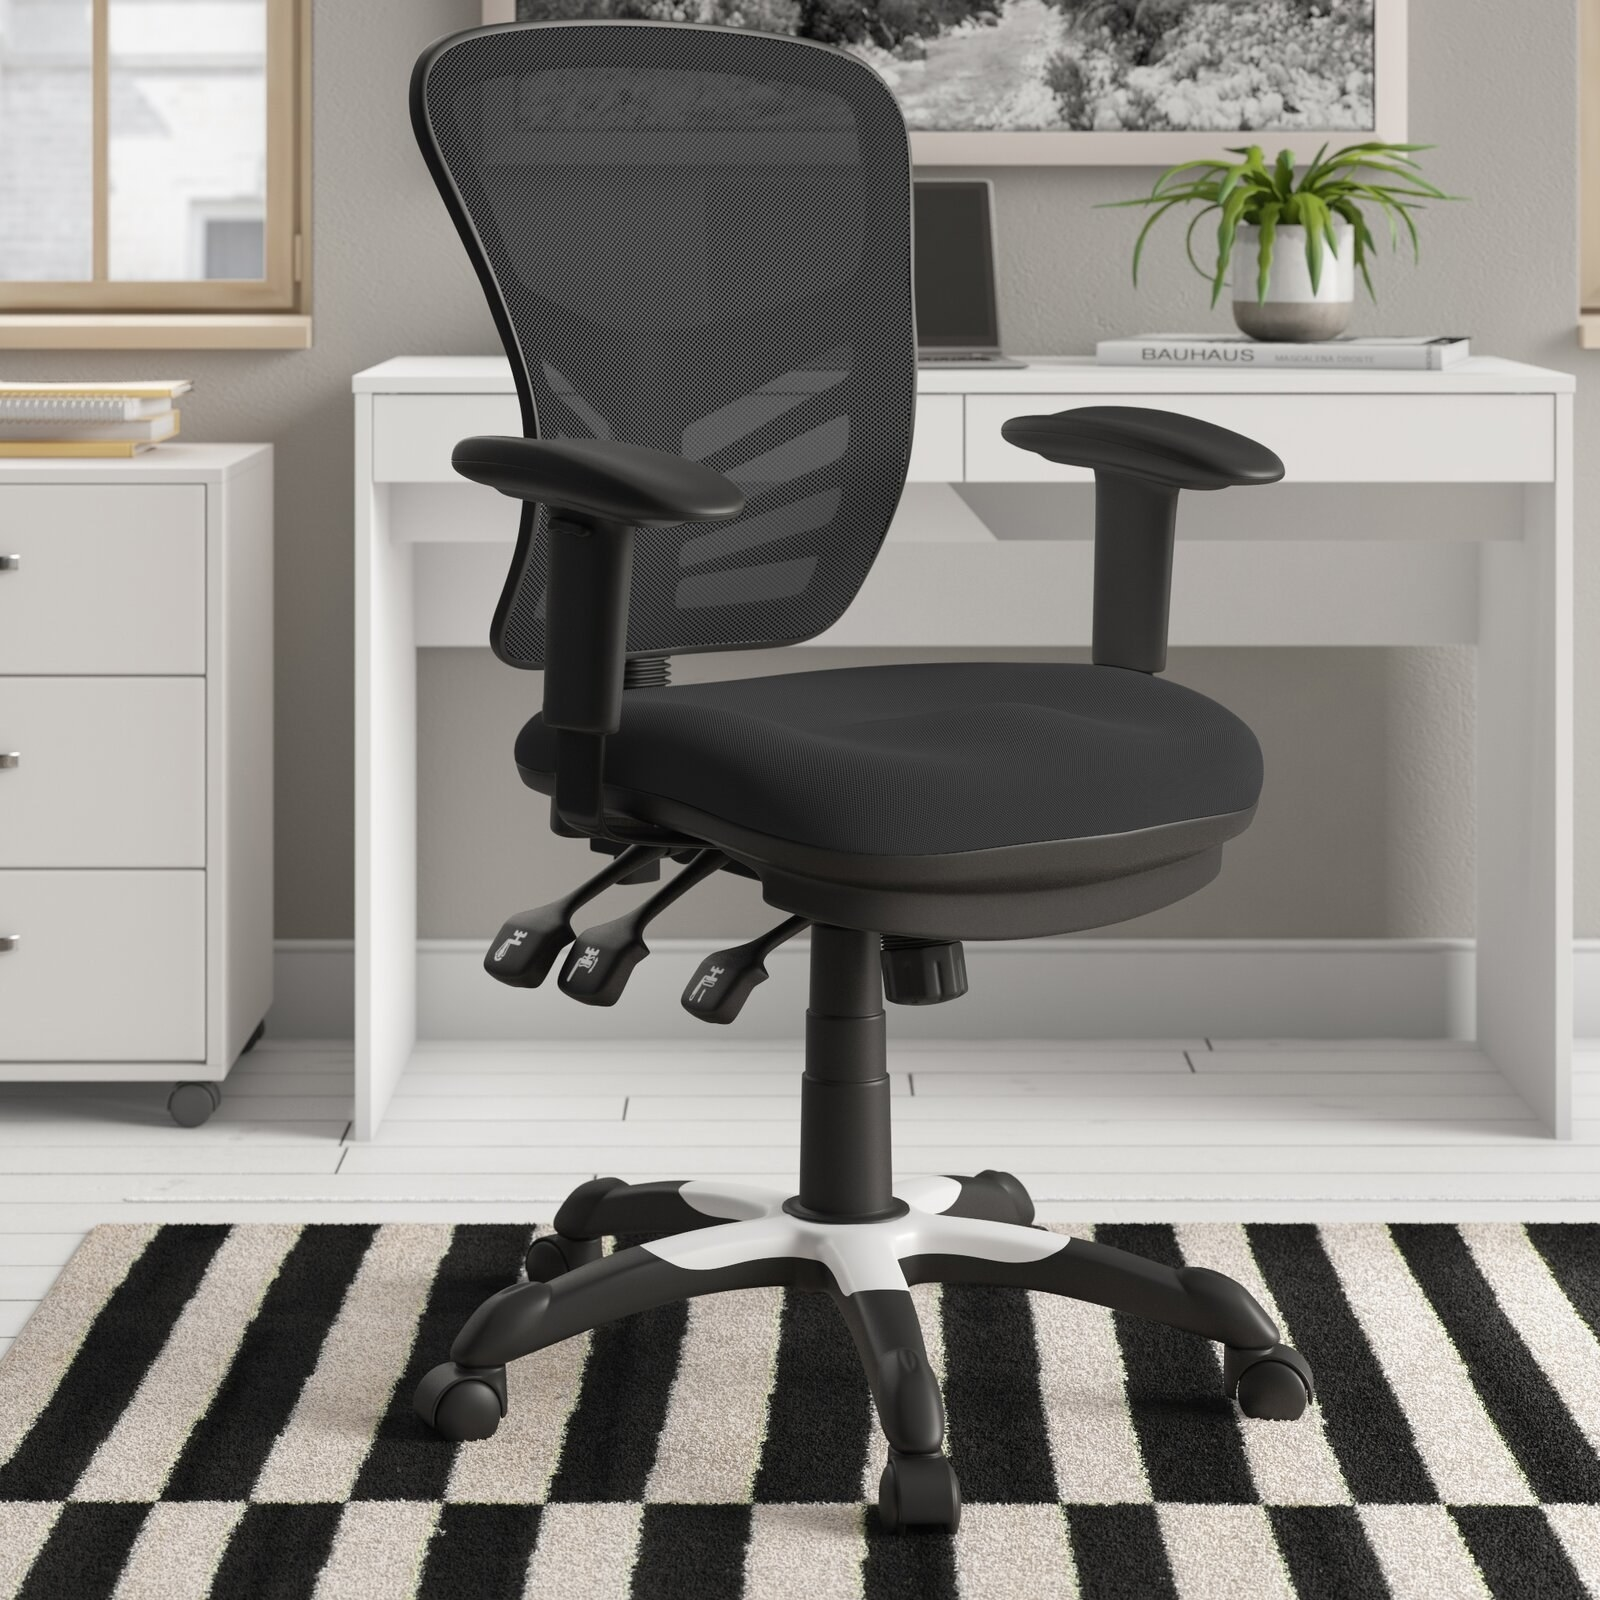 The black swivel chair with armrests and a mesh back